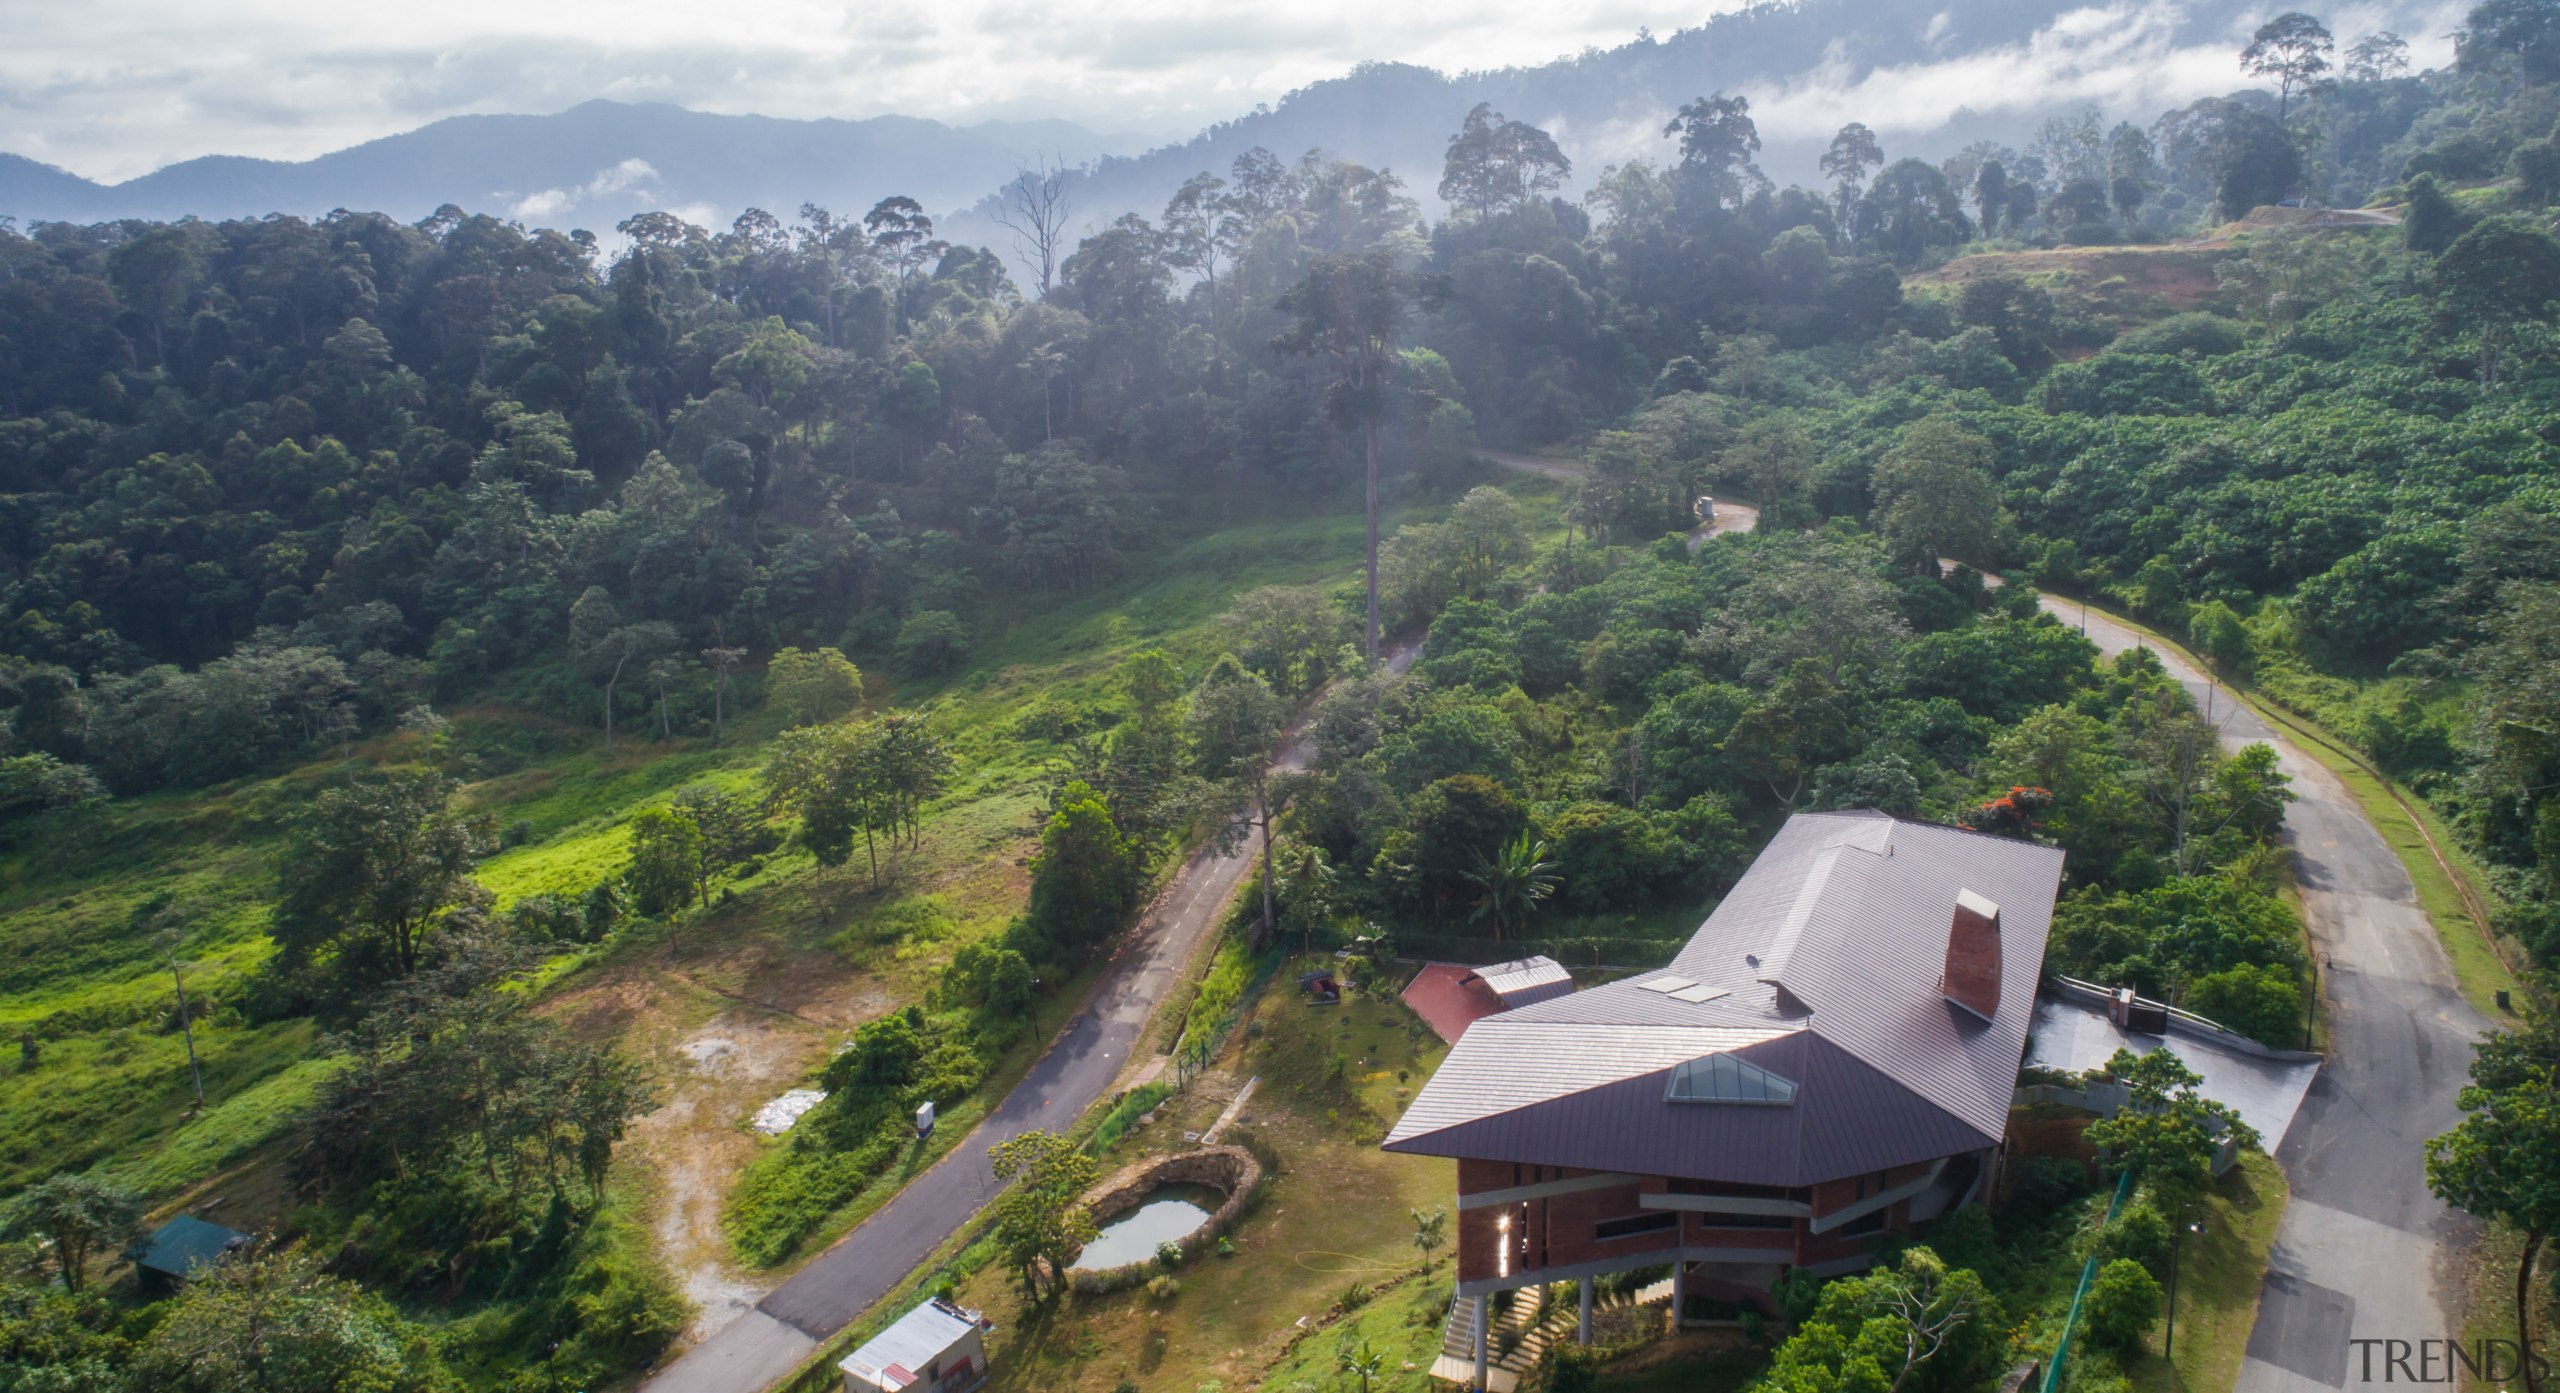 The homeowners approached MJ Kanny Architect to design aerial photography, bird's-eye view, geological phenomenon, highland, hill, hill station, jungle, landscape, mount scenery, mountain, mountain village, mountainous landforms, rainforest, rural area, sky, vegetation, village, gray